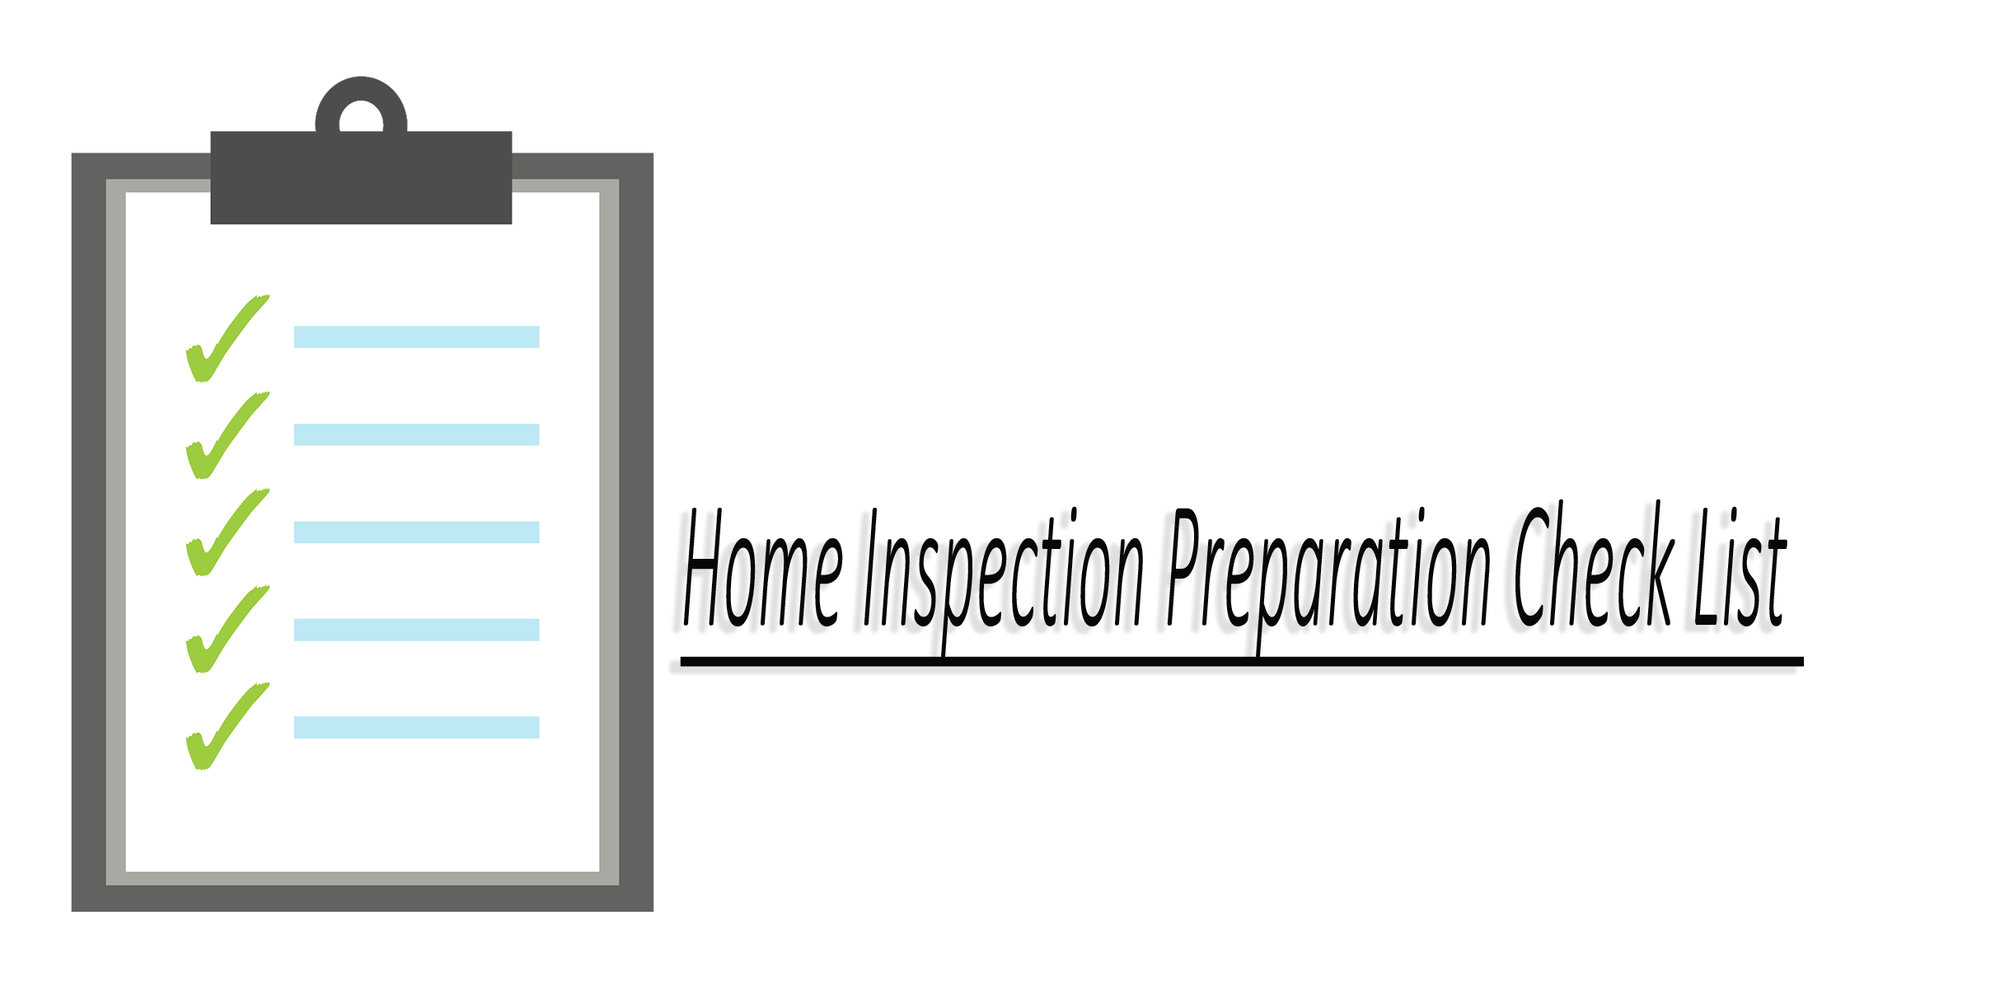 Home Inspection Preparation List